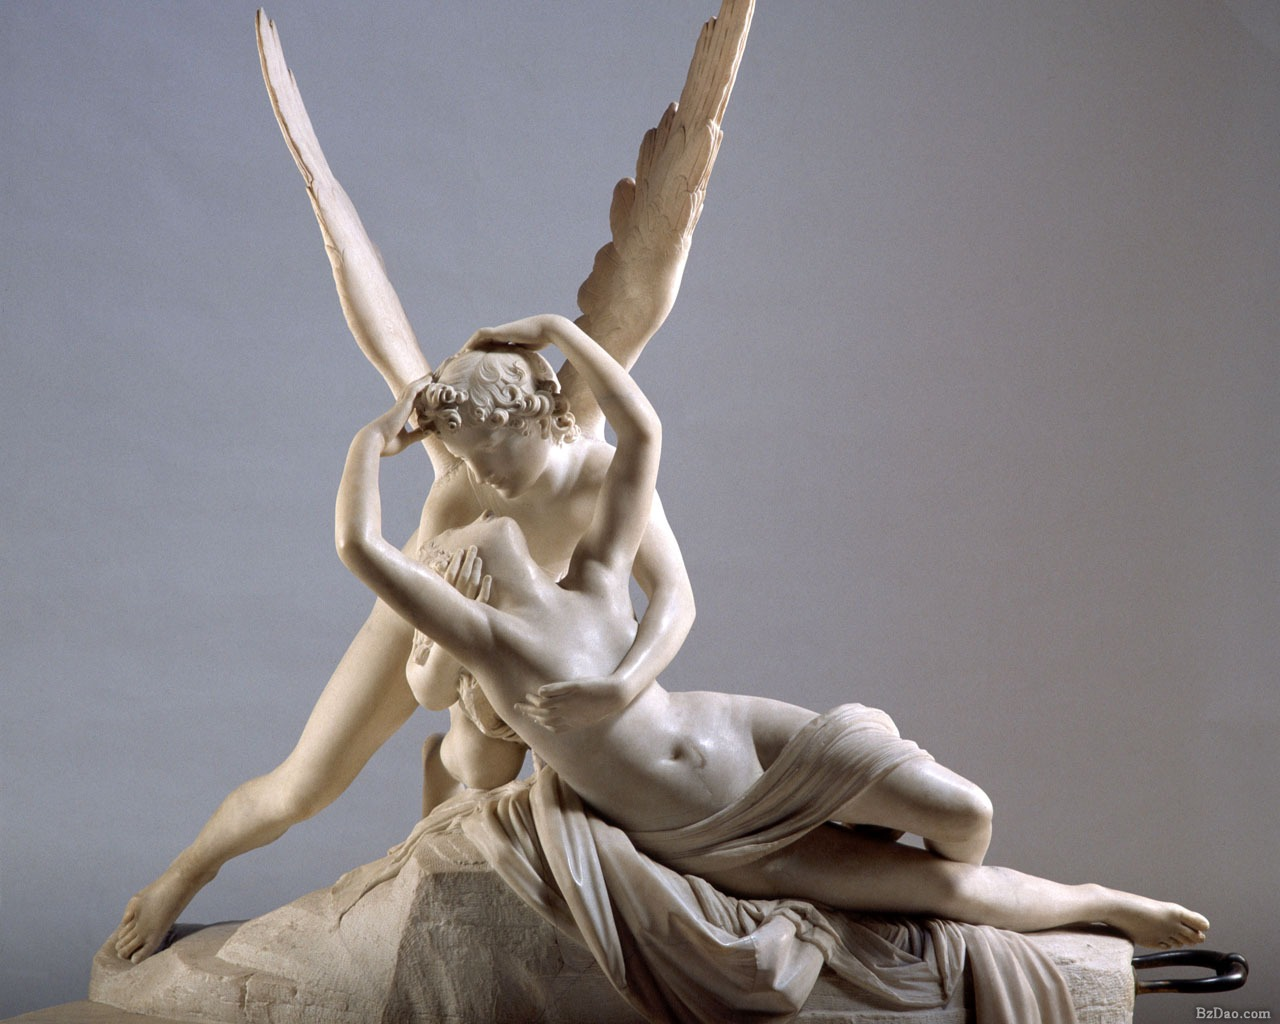 Cupid and Psyche by Antonio Canova in Musee du Louvre